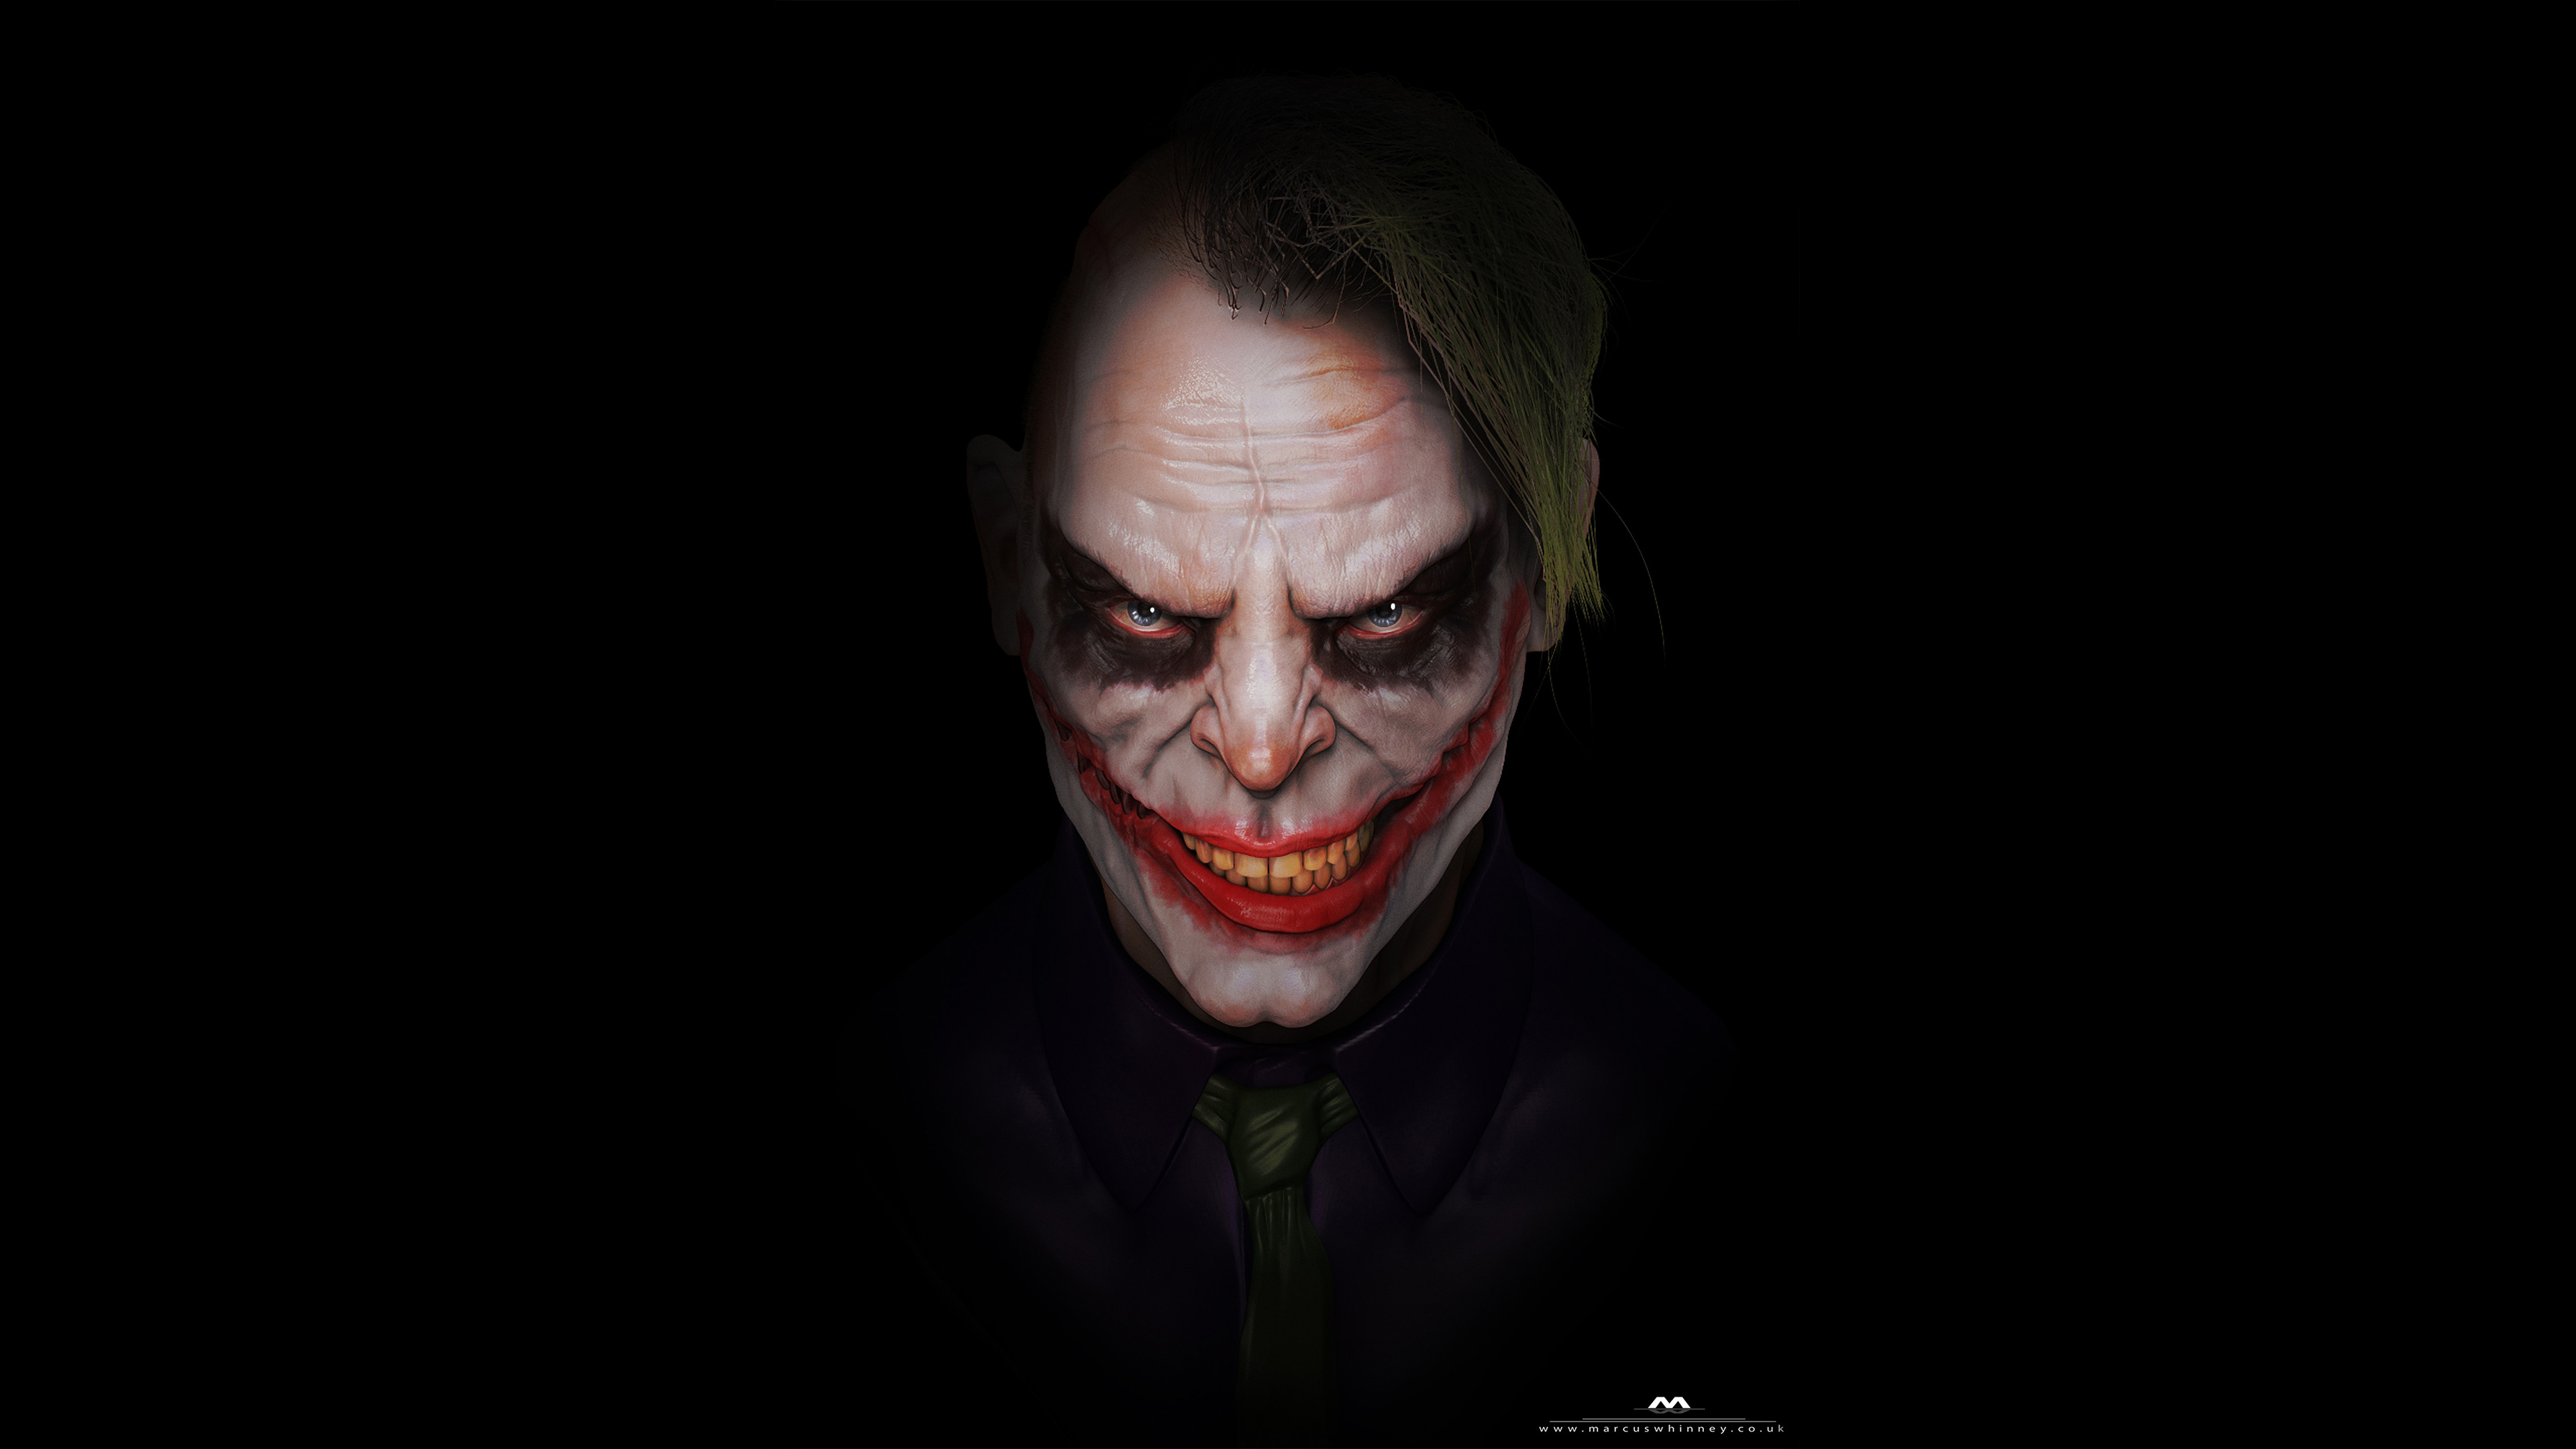 Scary Joker 4k Hd Superheroes 4k Wallpapers Images Backgrounds Photos And Pictures